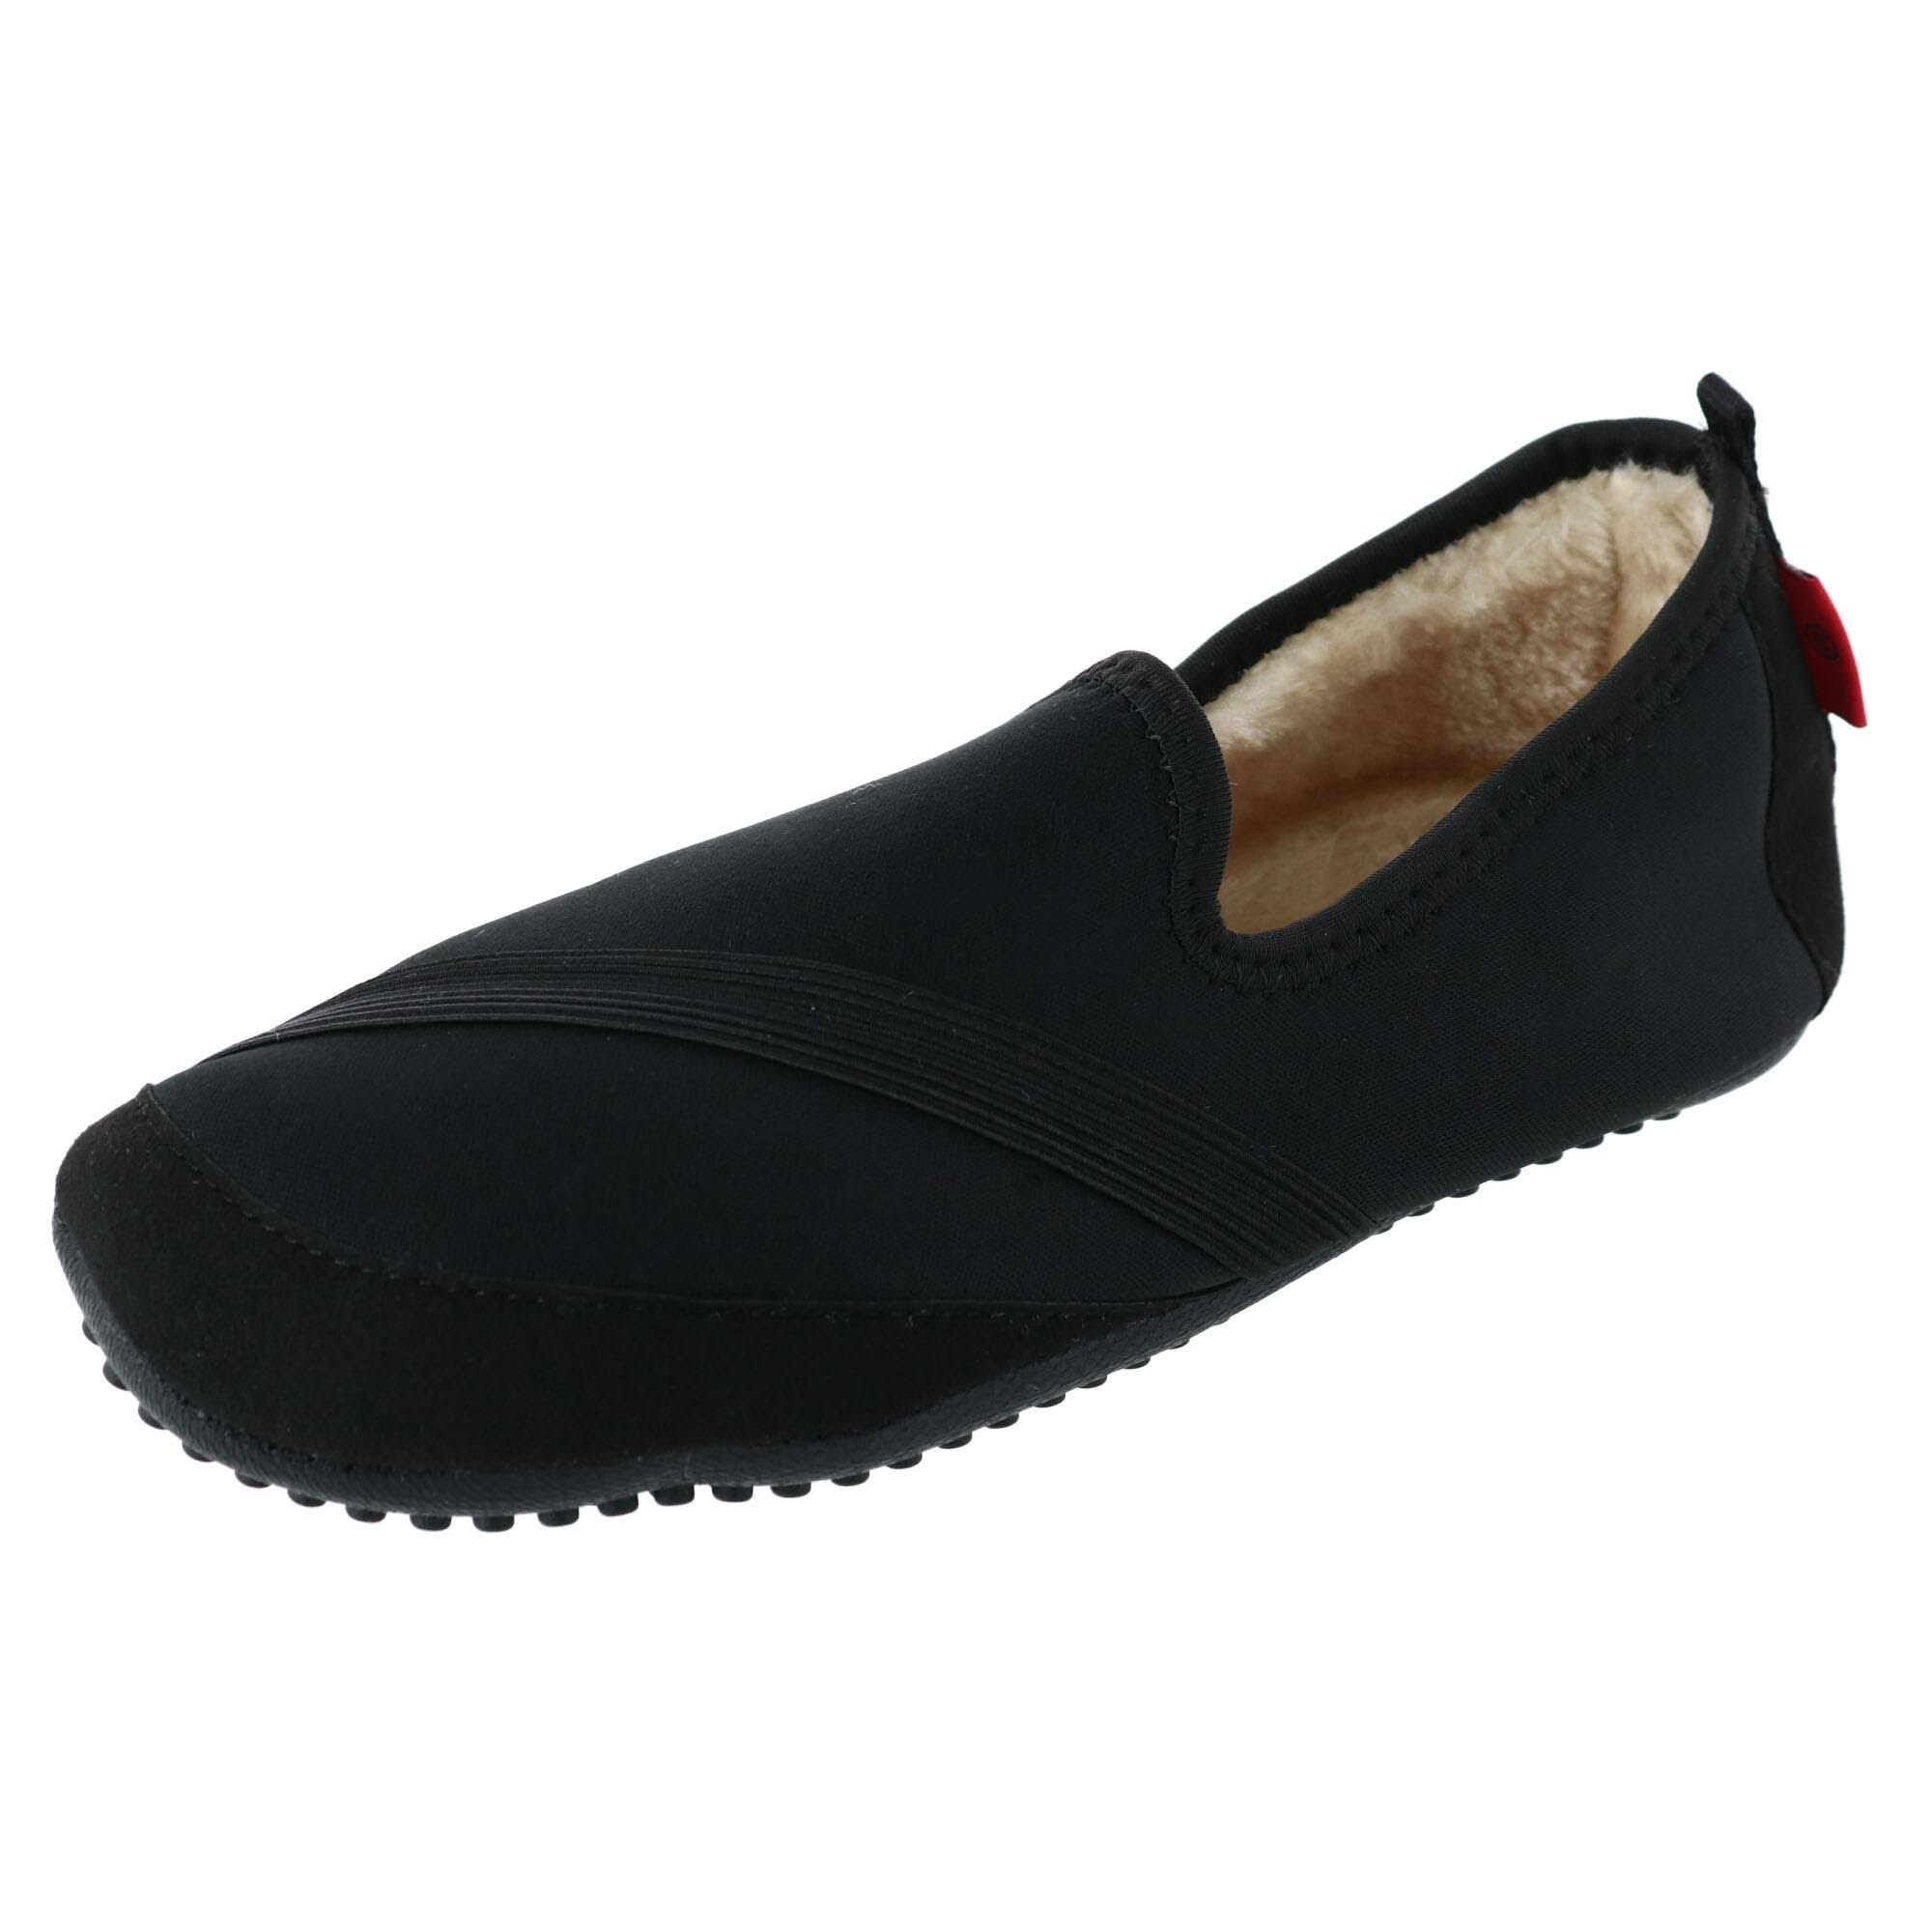 Fit Kicks Women's Solid Kozi Kicks Insulated Slippers - Black, Medium